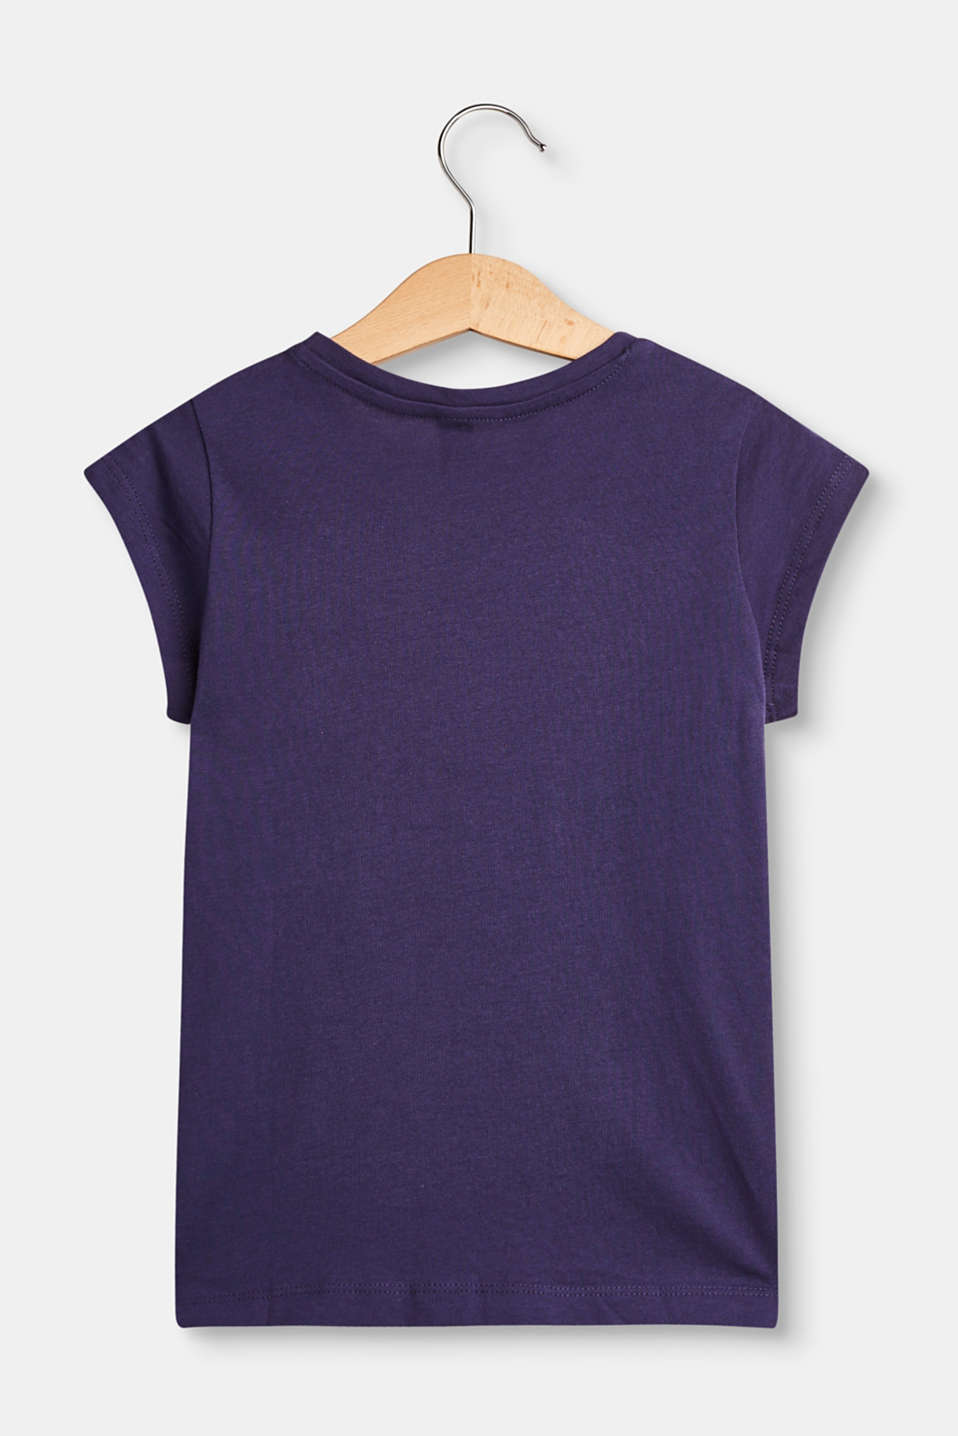 Cotton T-shirt with a colourful statement